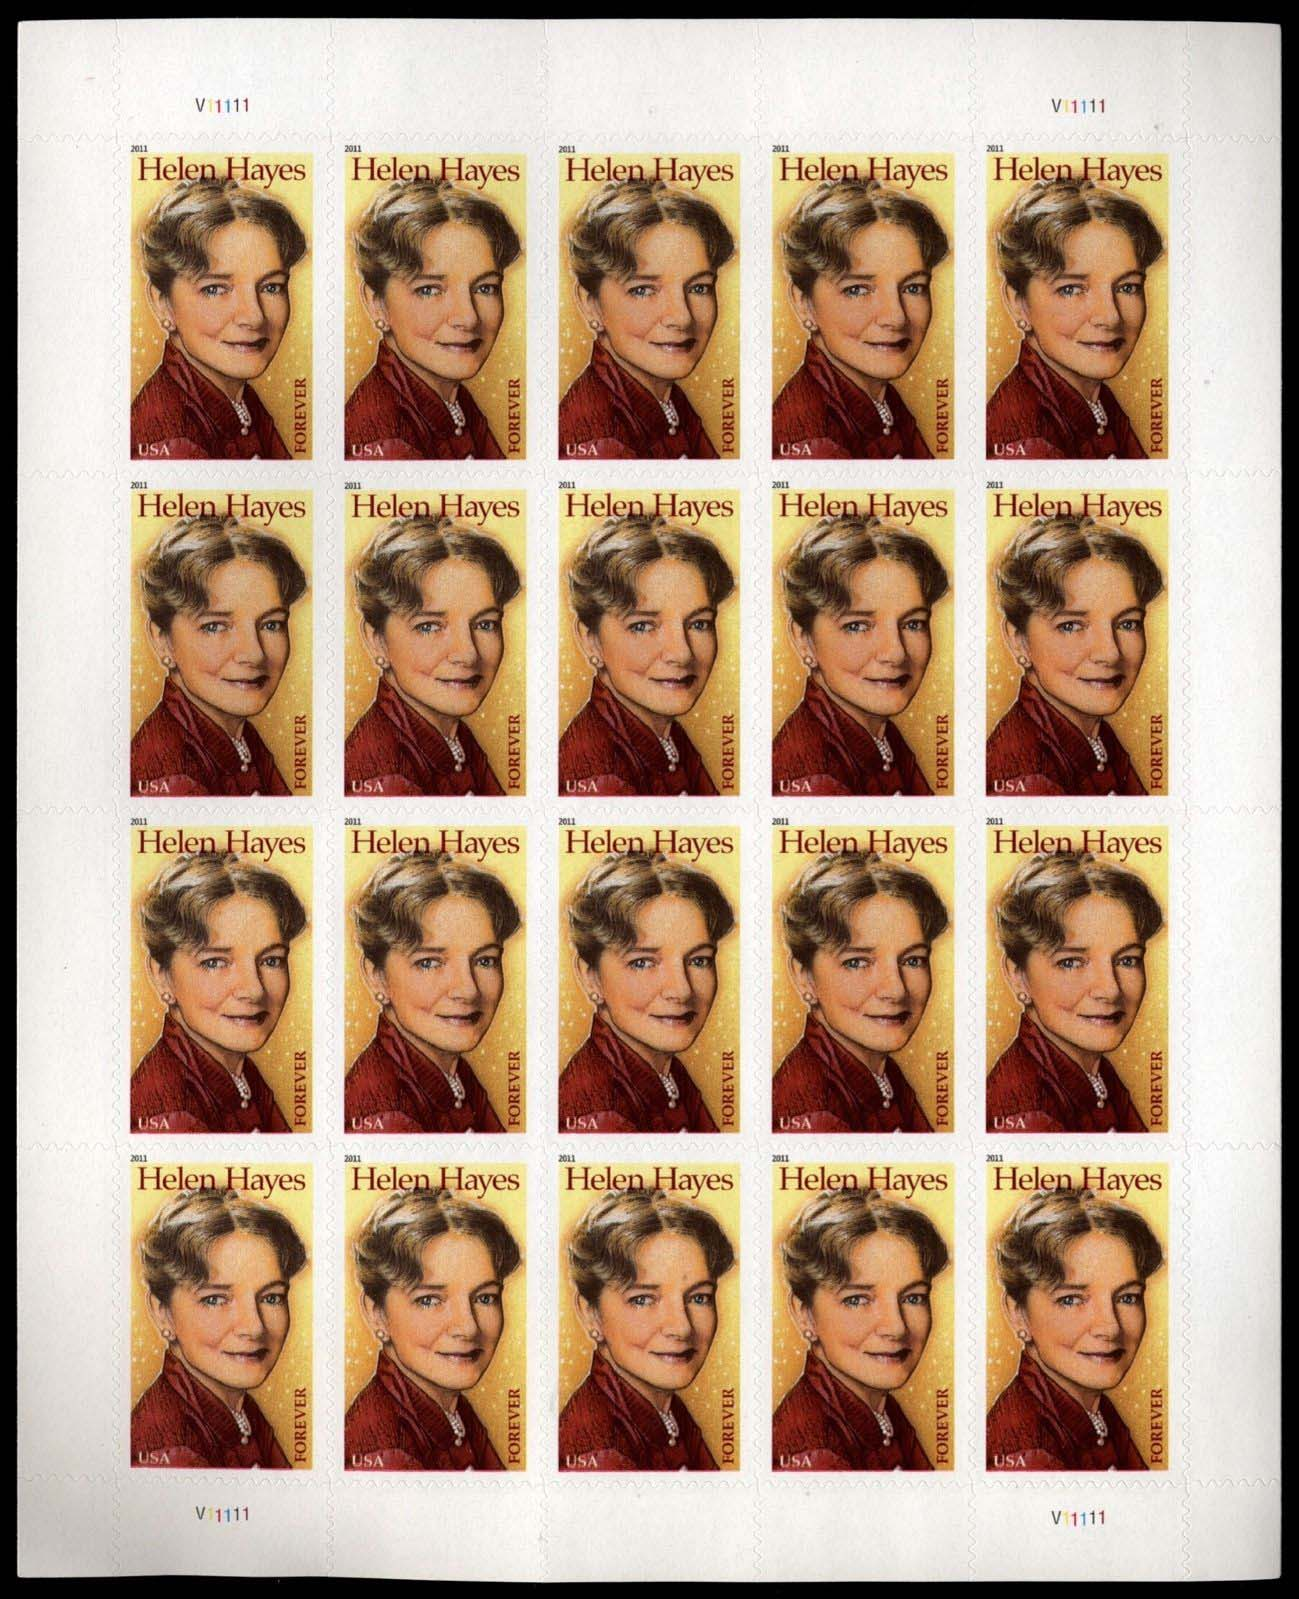 Scott #4525, Forever sheet of 20, Helen Hayes, Actress